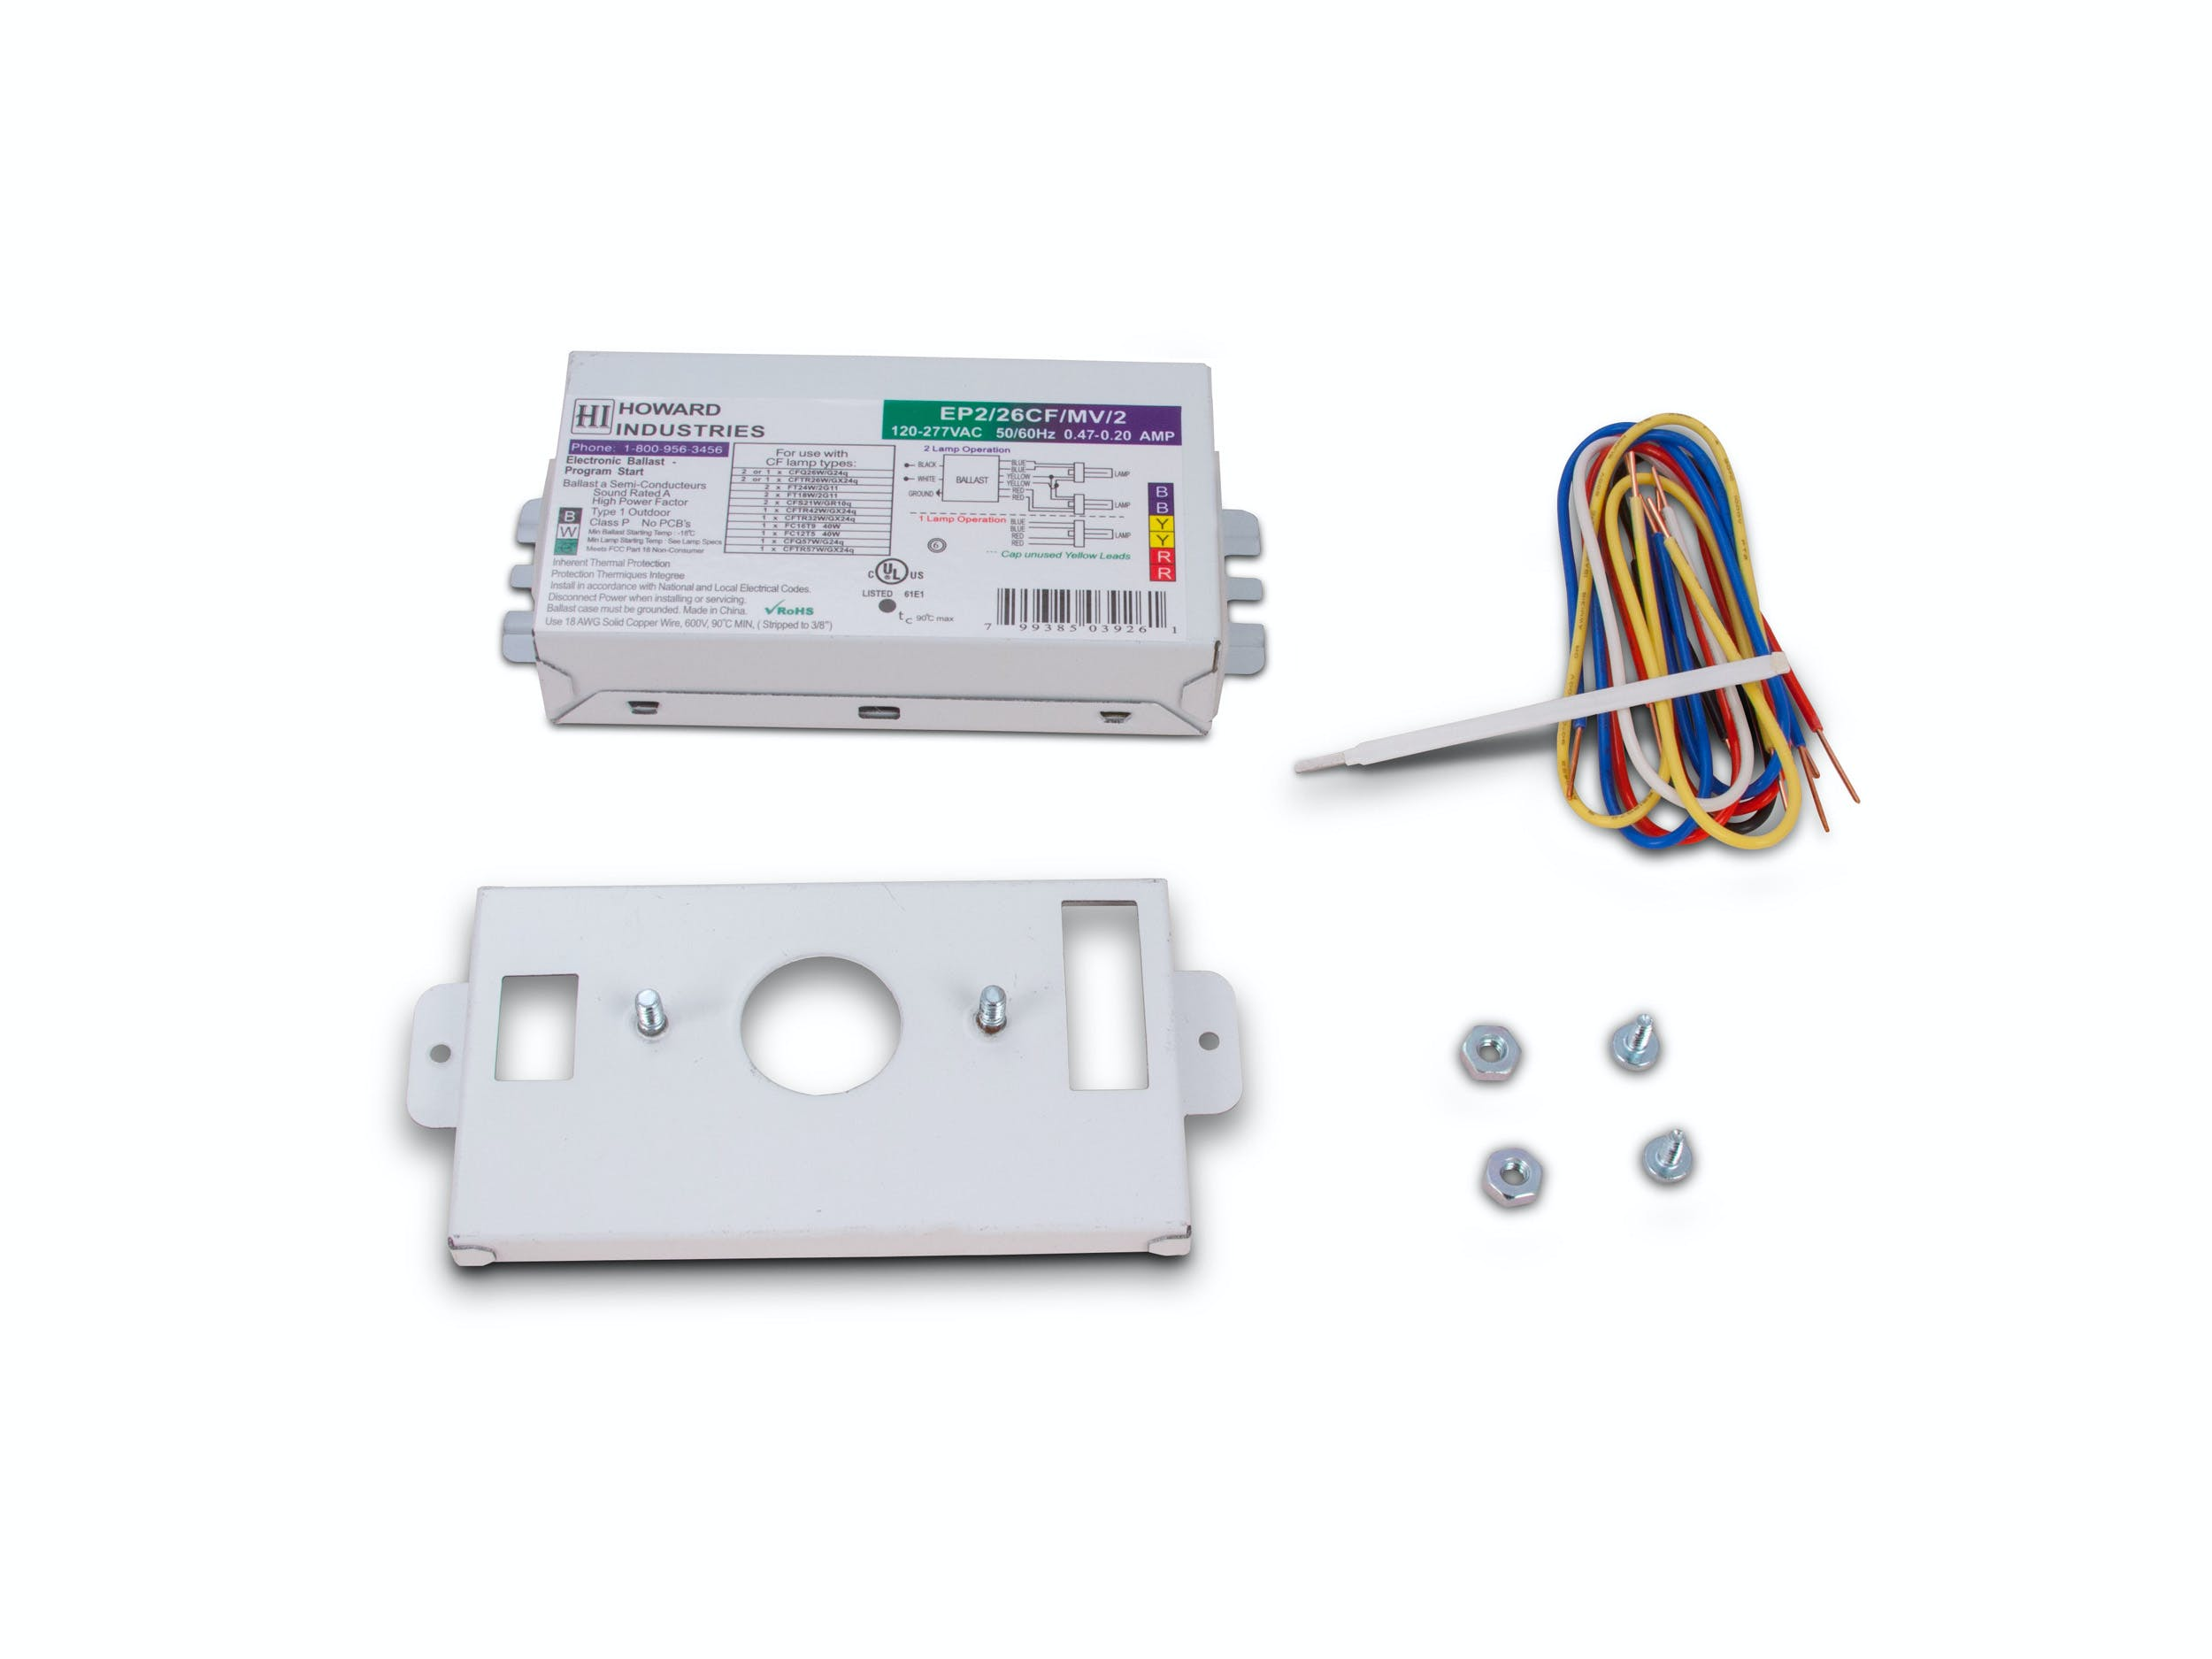 2 Lamp Electronic Compact Fluorescent Ballast - EP2/26CF/MV/K2 - sold by RelightDepot.com